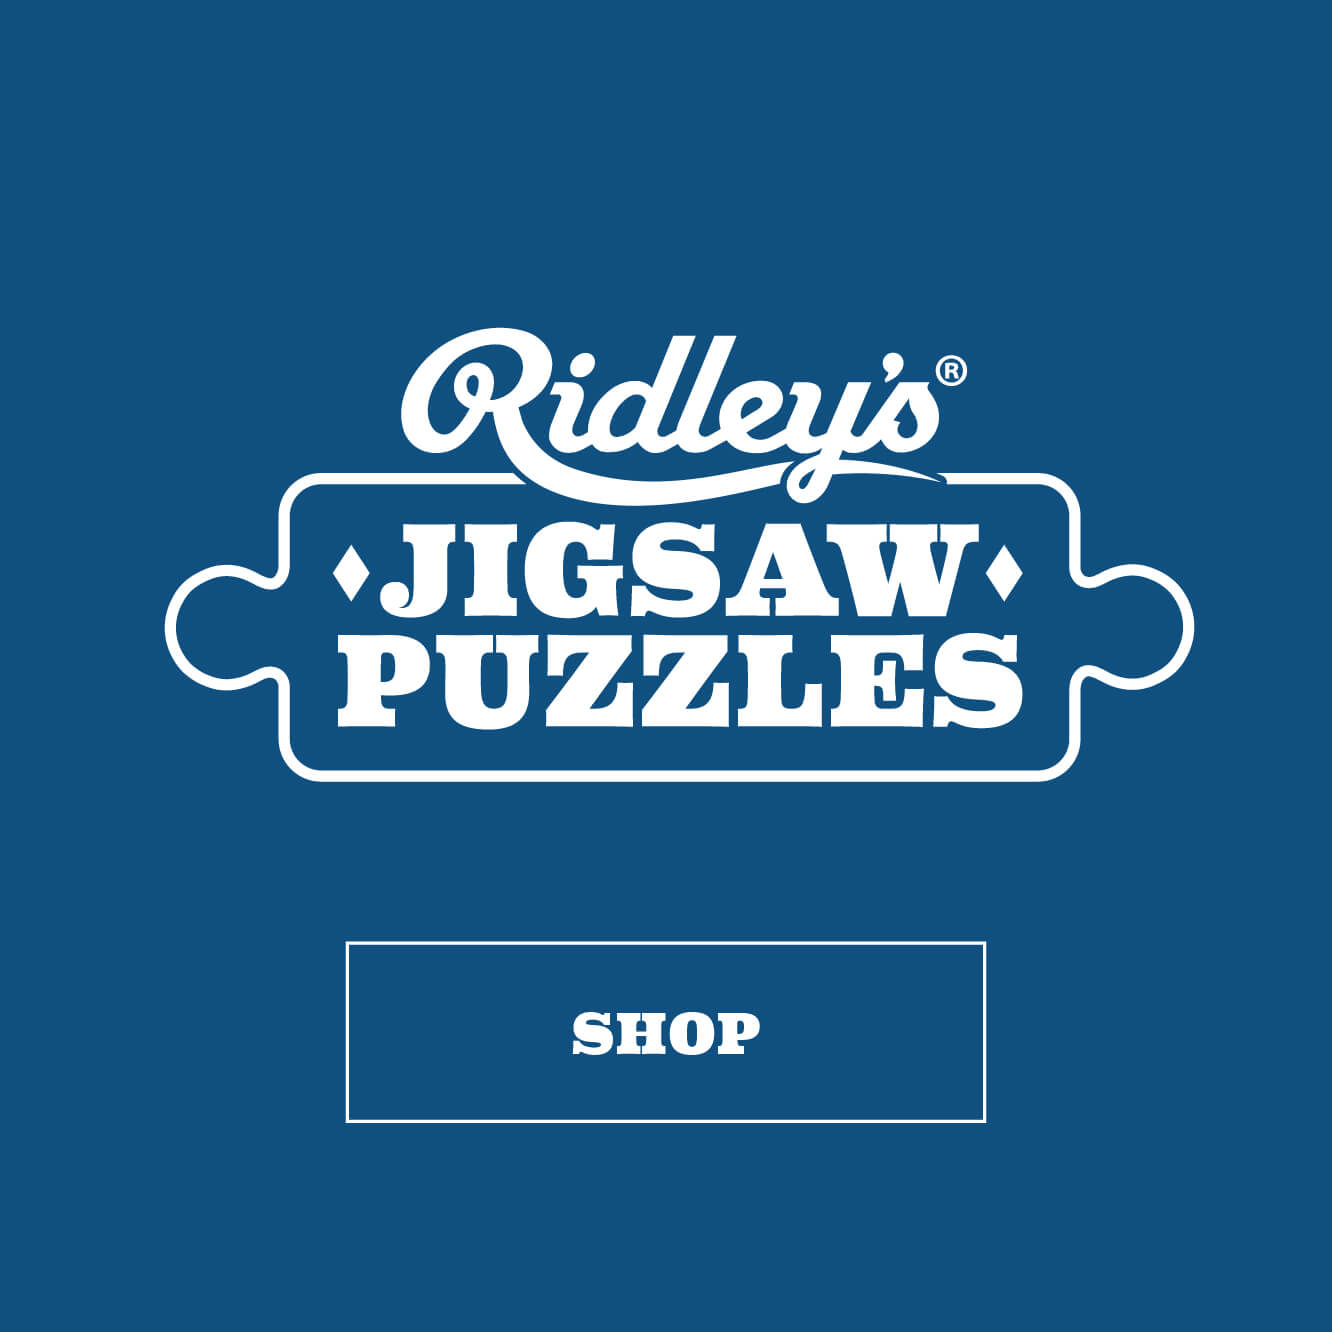 Shop Ridley's Jigsaw Puzzles